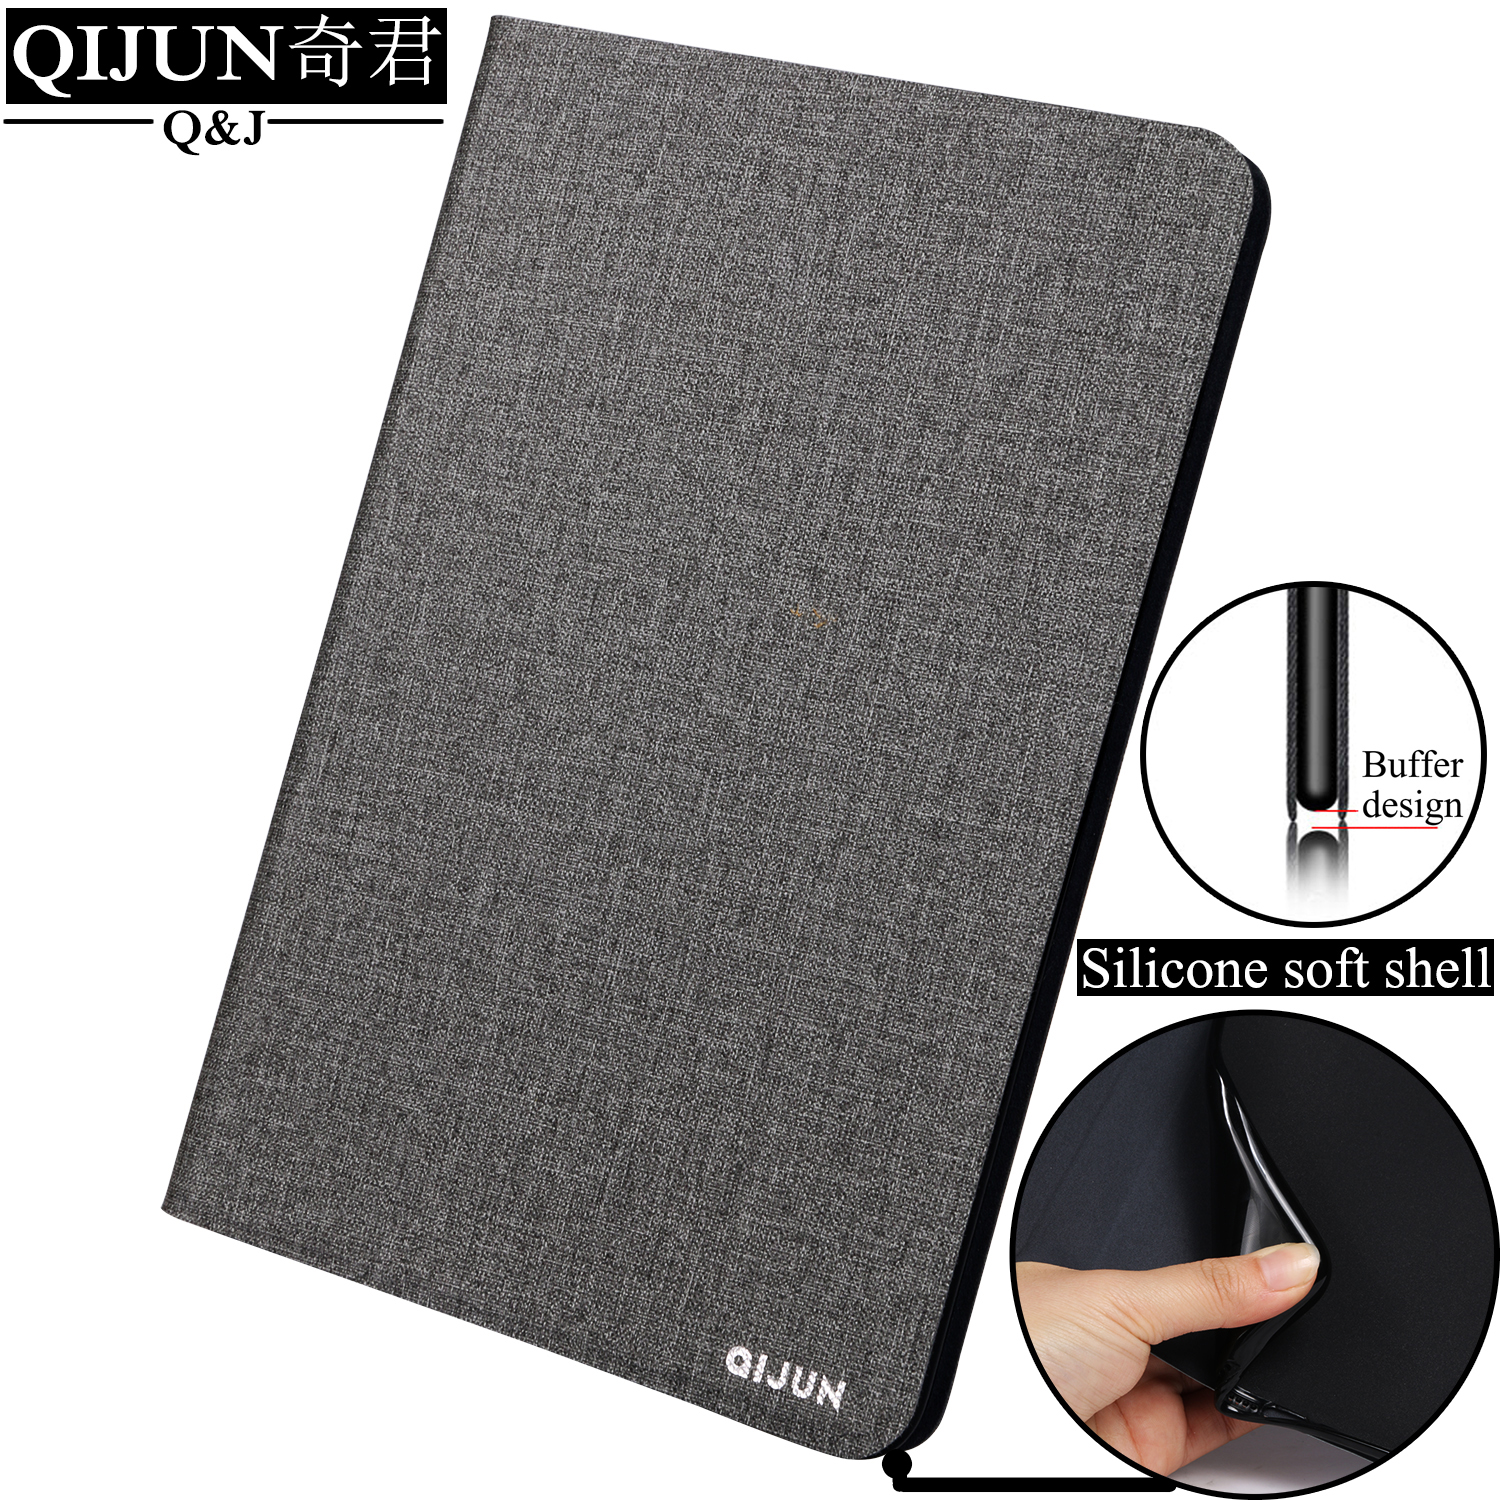 tablet bag flip leather case for Apple ipad Air 9 7 quot protective Stand Cover Silicone soft shell fundas capa for Air1 A1474 A1475 in Tablets amp e Books Case from Computer amp Office